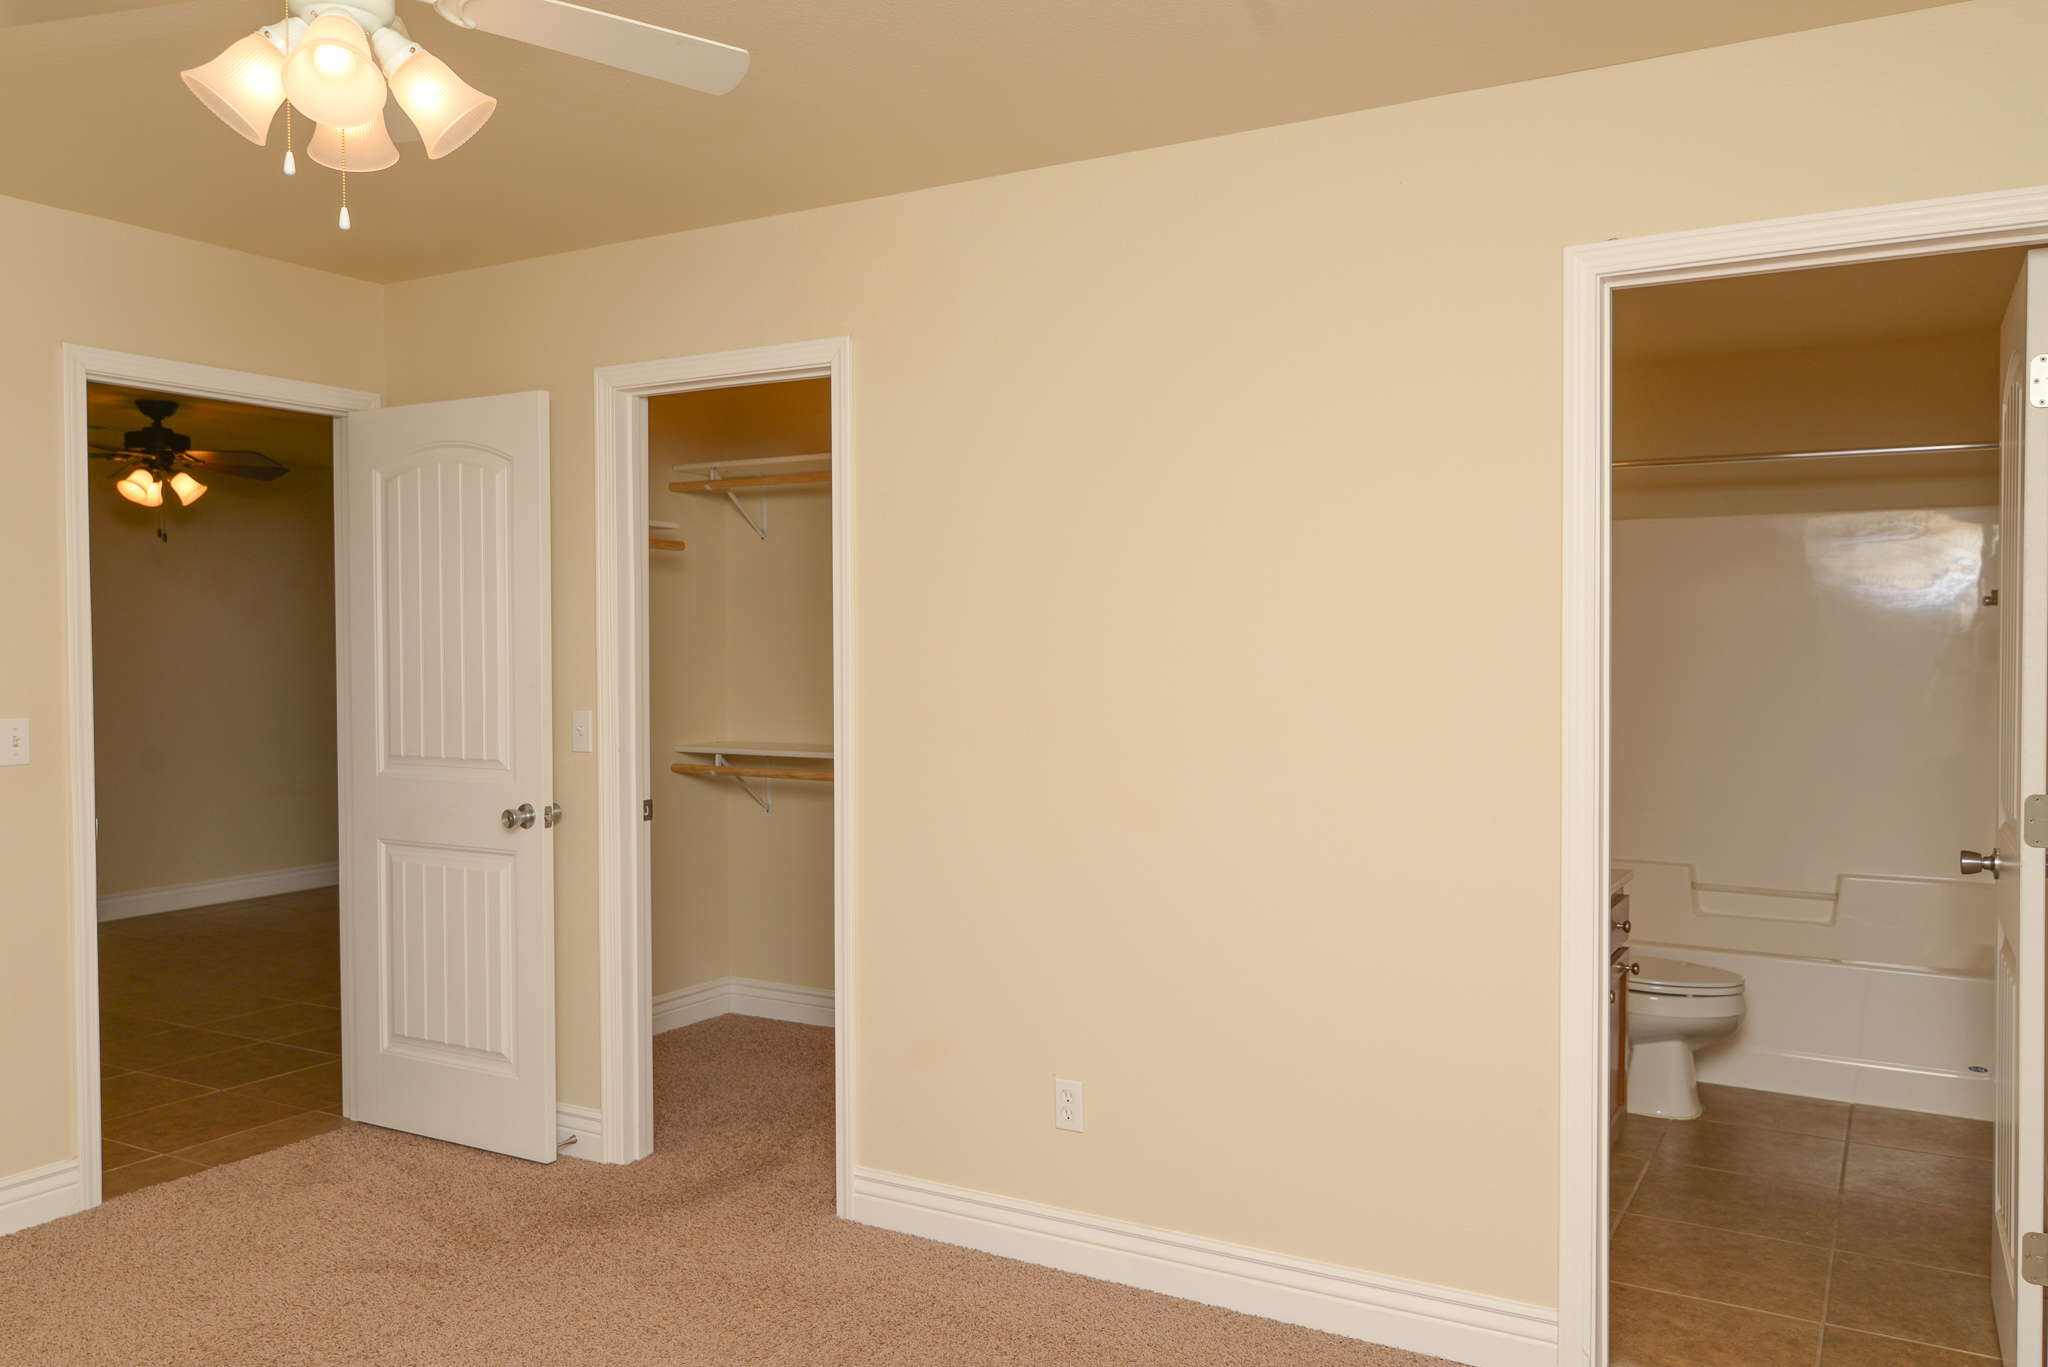 Home-For-Rent-Jefferson-City-Holts-Summit-Missouri-65109-Rentals-Property -Management-Capital-Investment-Realty (13)